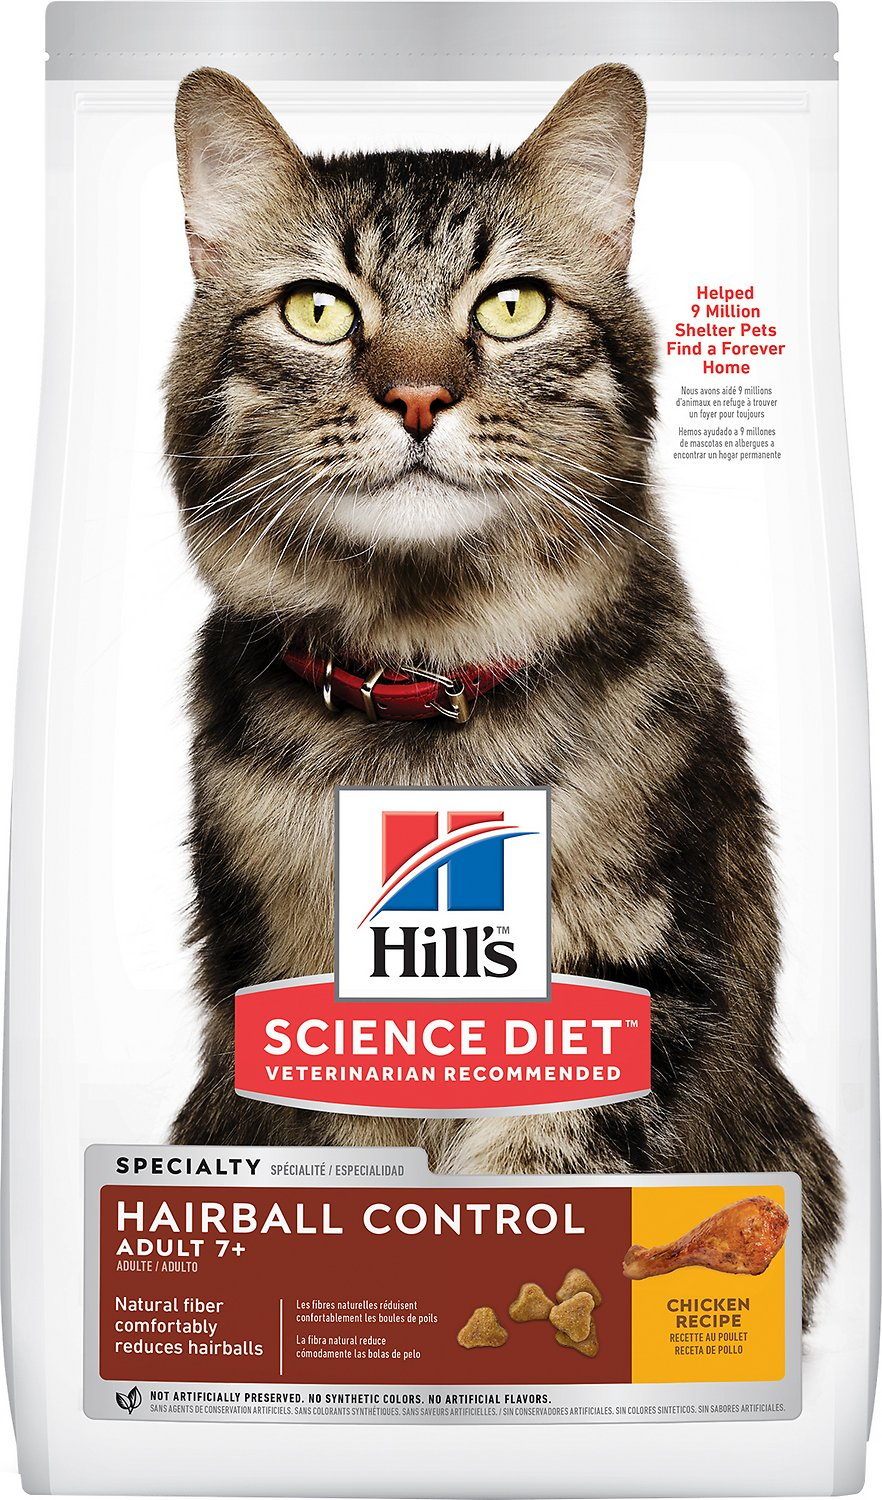 Science Diet Cat Food Hairball Control